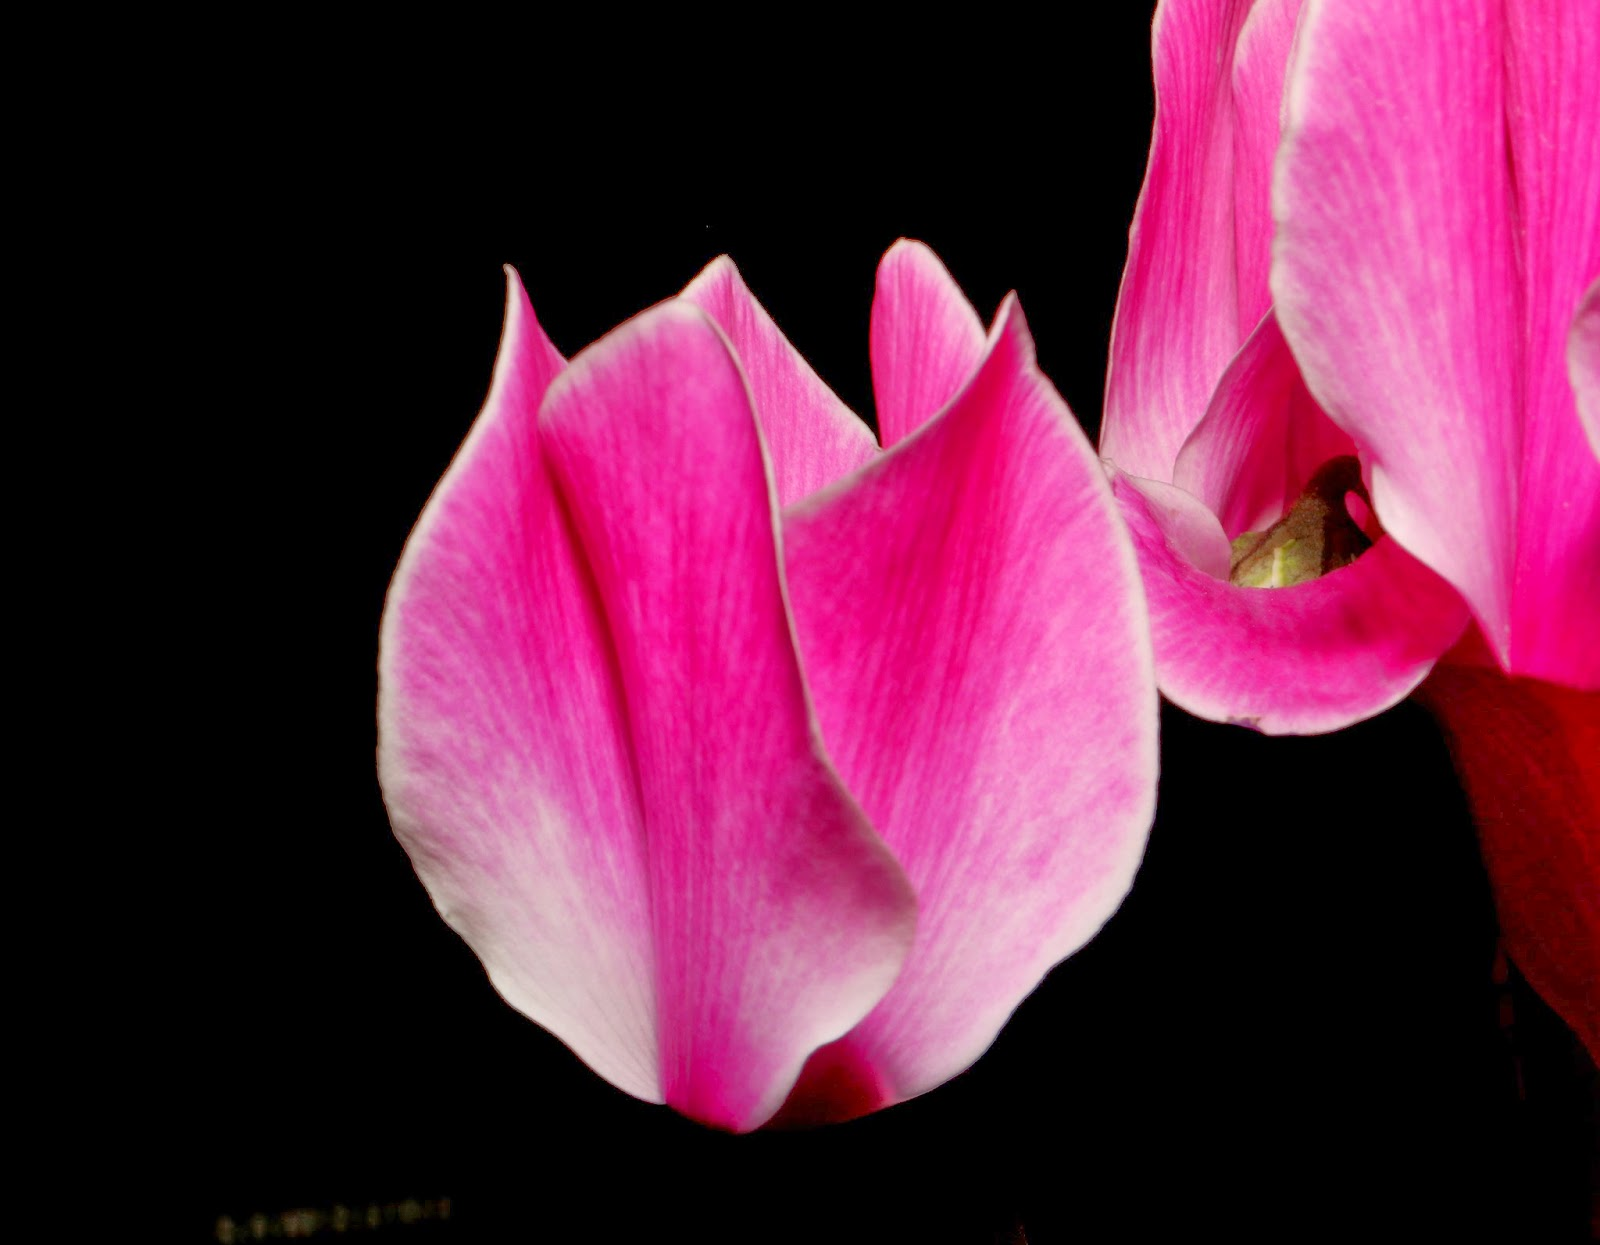 Cyclamen Flower Photo Project: With Canon EOS 70D and EF-S 18-135mm IS STM Lens Photo: © Vernon Chalmers